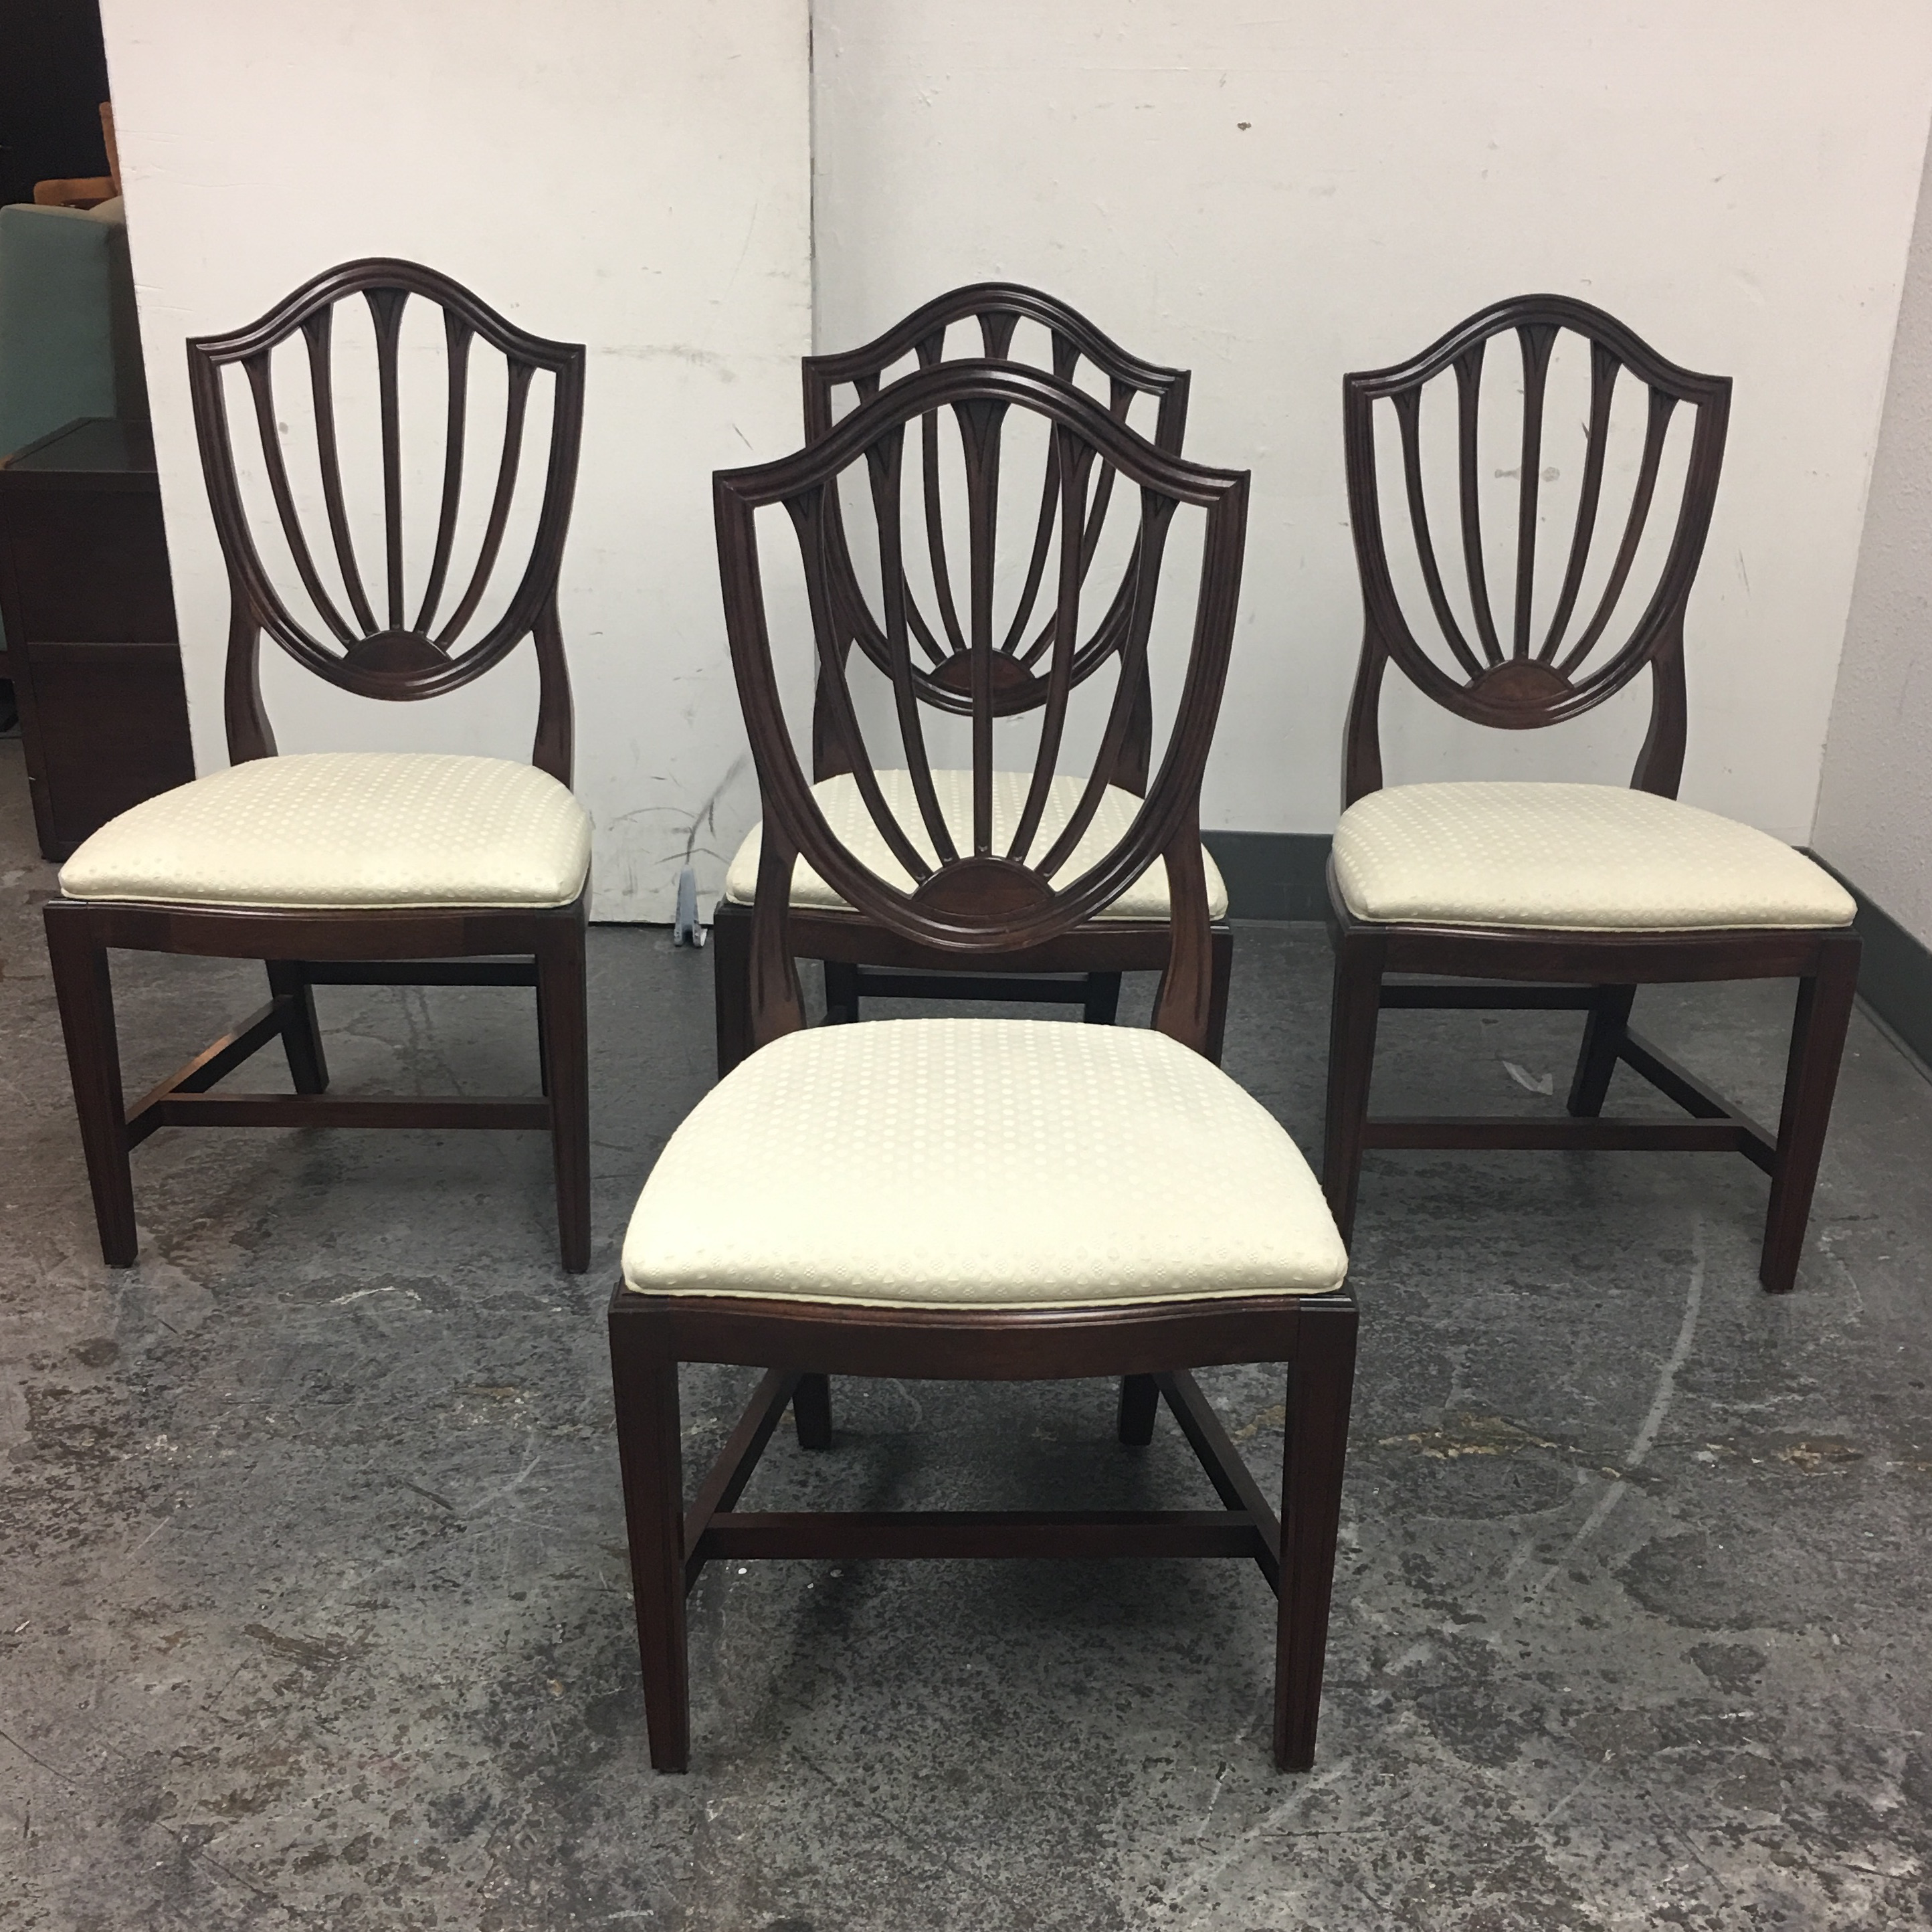 ethan allen shield back dining chairs set of 4 image 2 of 10